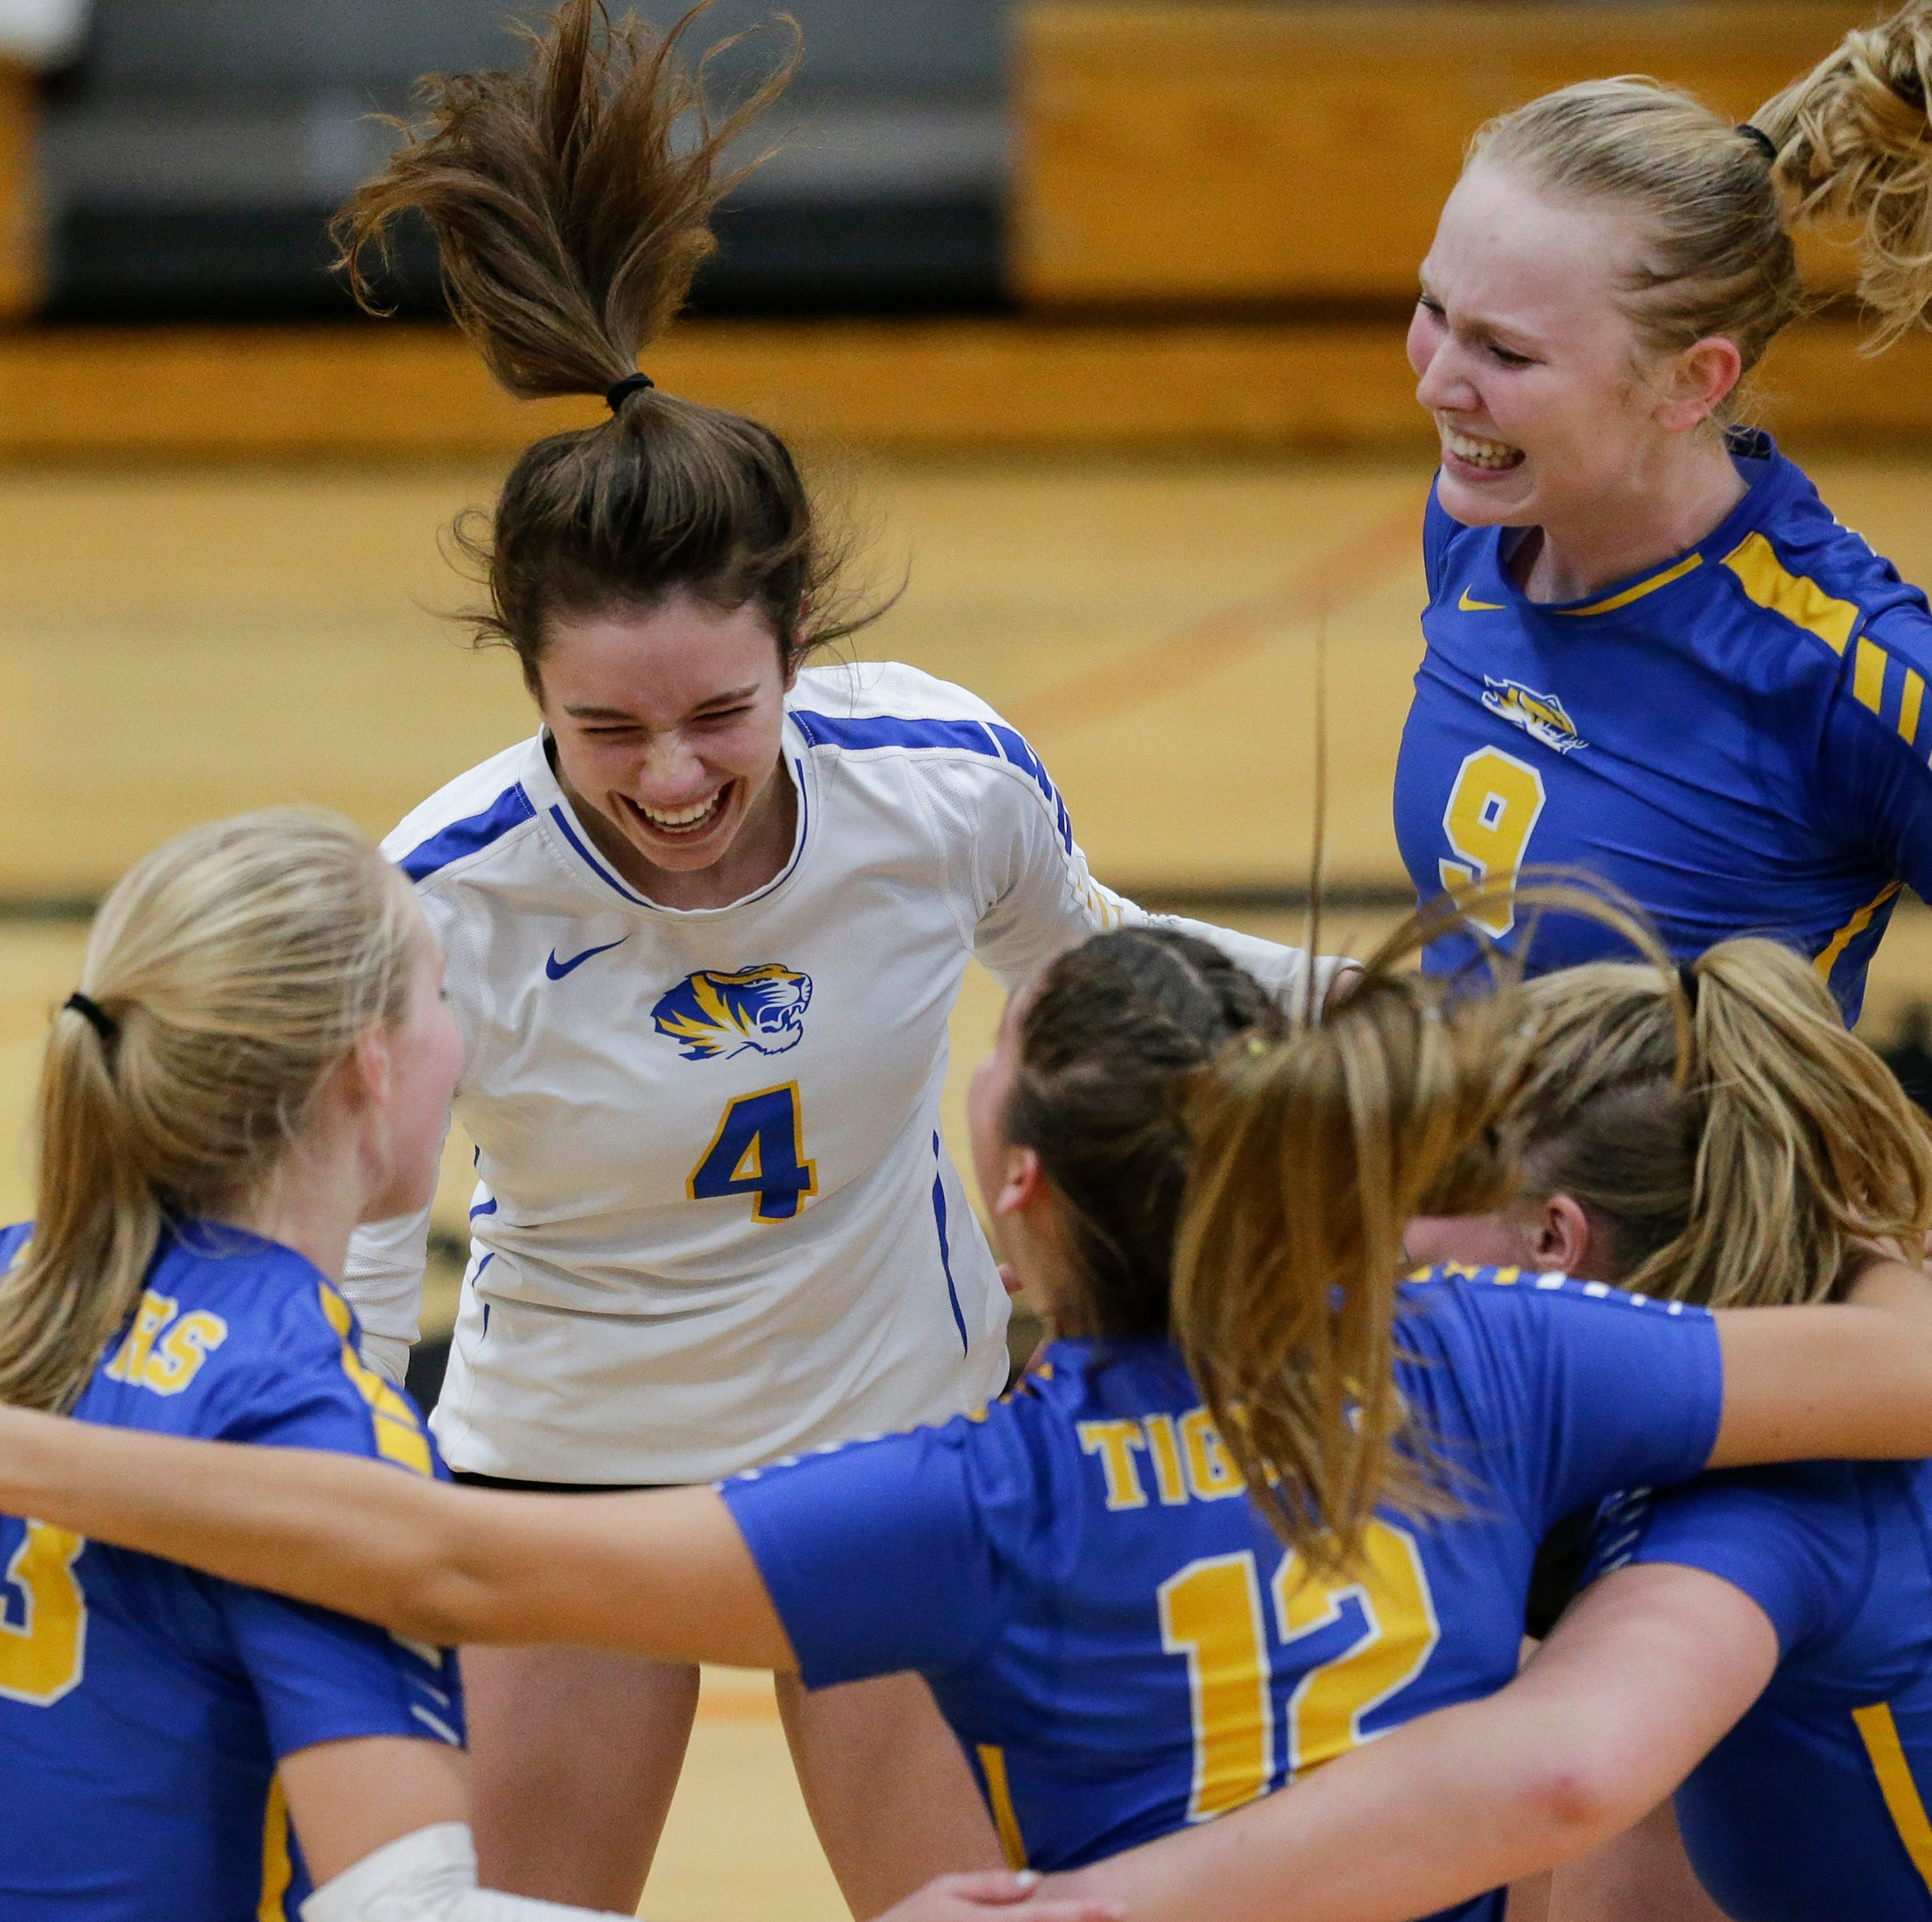 WIAA volleyball: Youthful Howards Grove sweeps Lourdes Academy in sectional semi